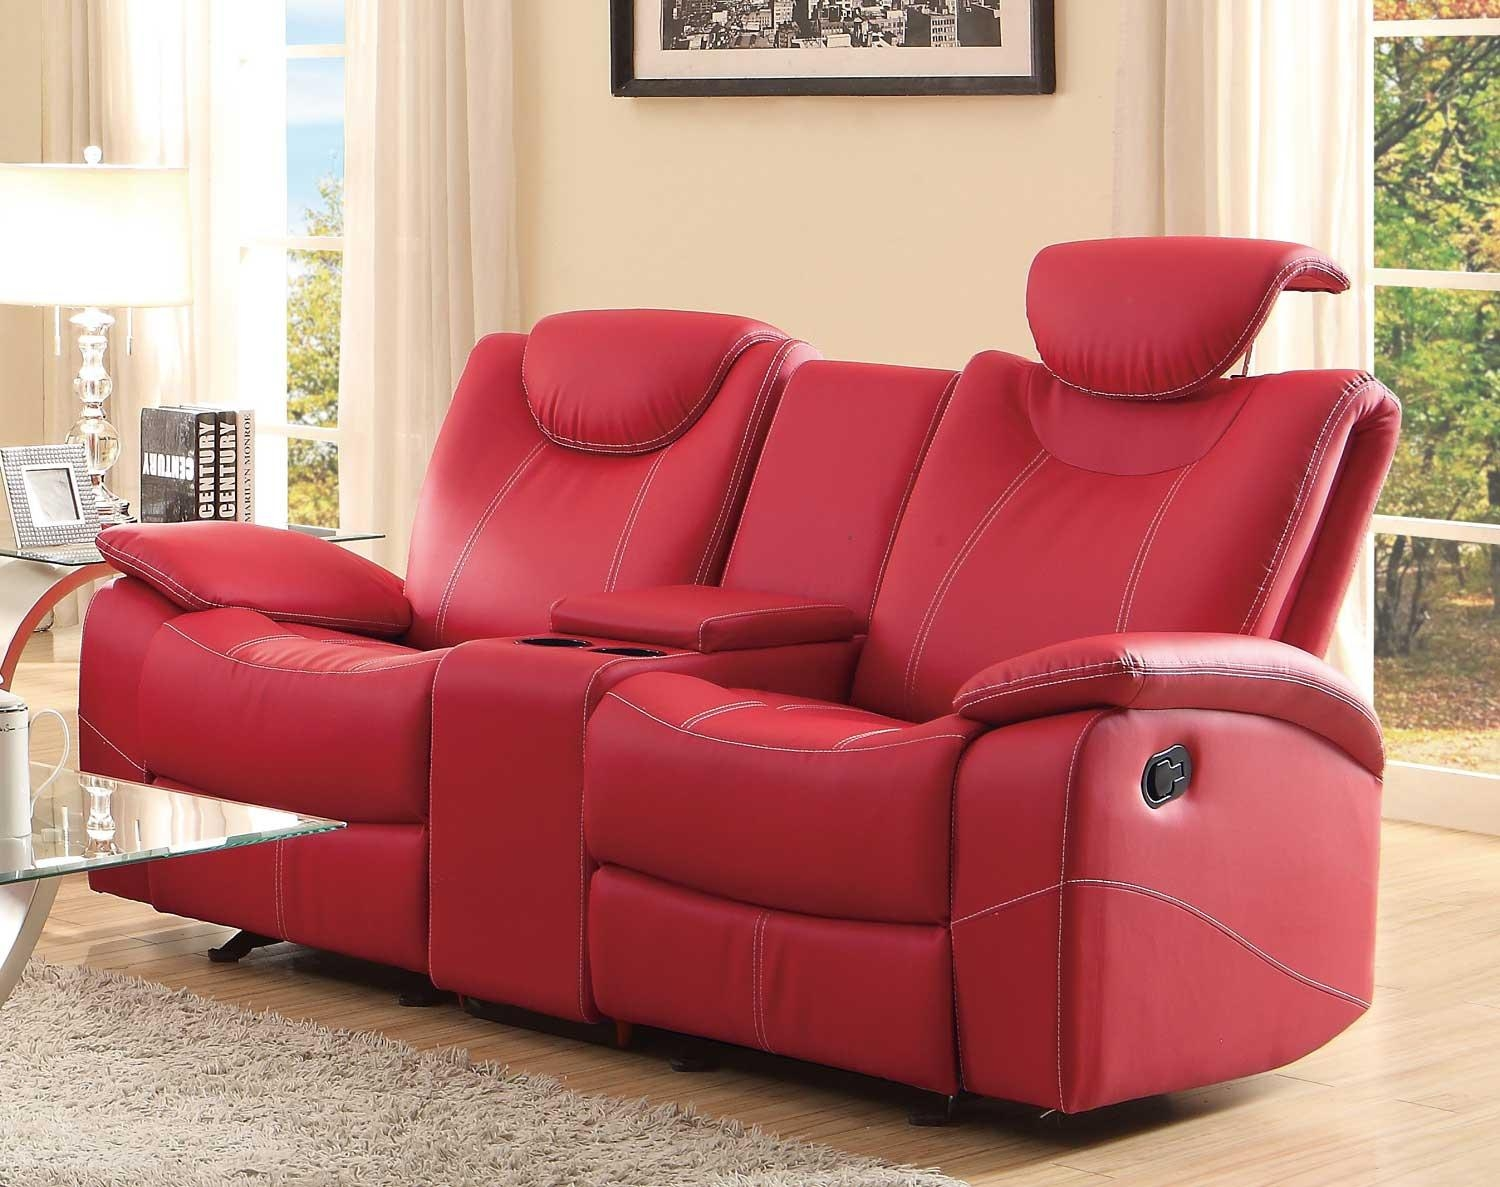 Furniture: Glamour Reclining Loveseat With Center Console For In Modern Reclining Leather Sofas (View 17 of 20)